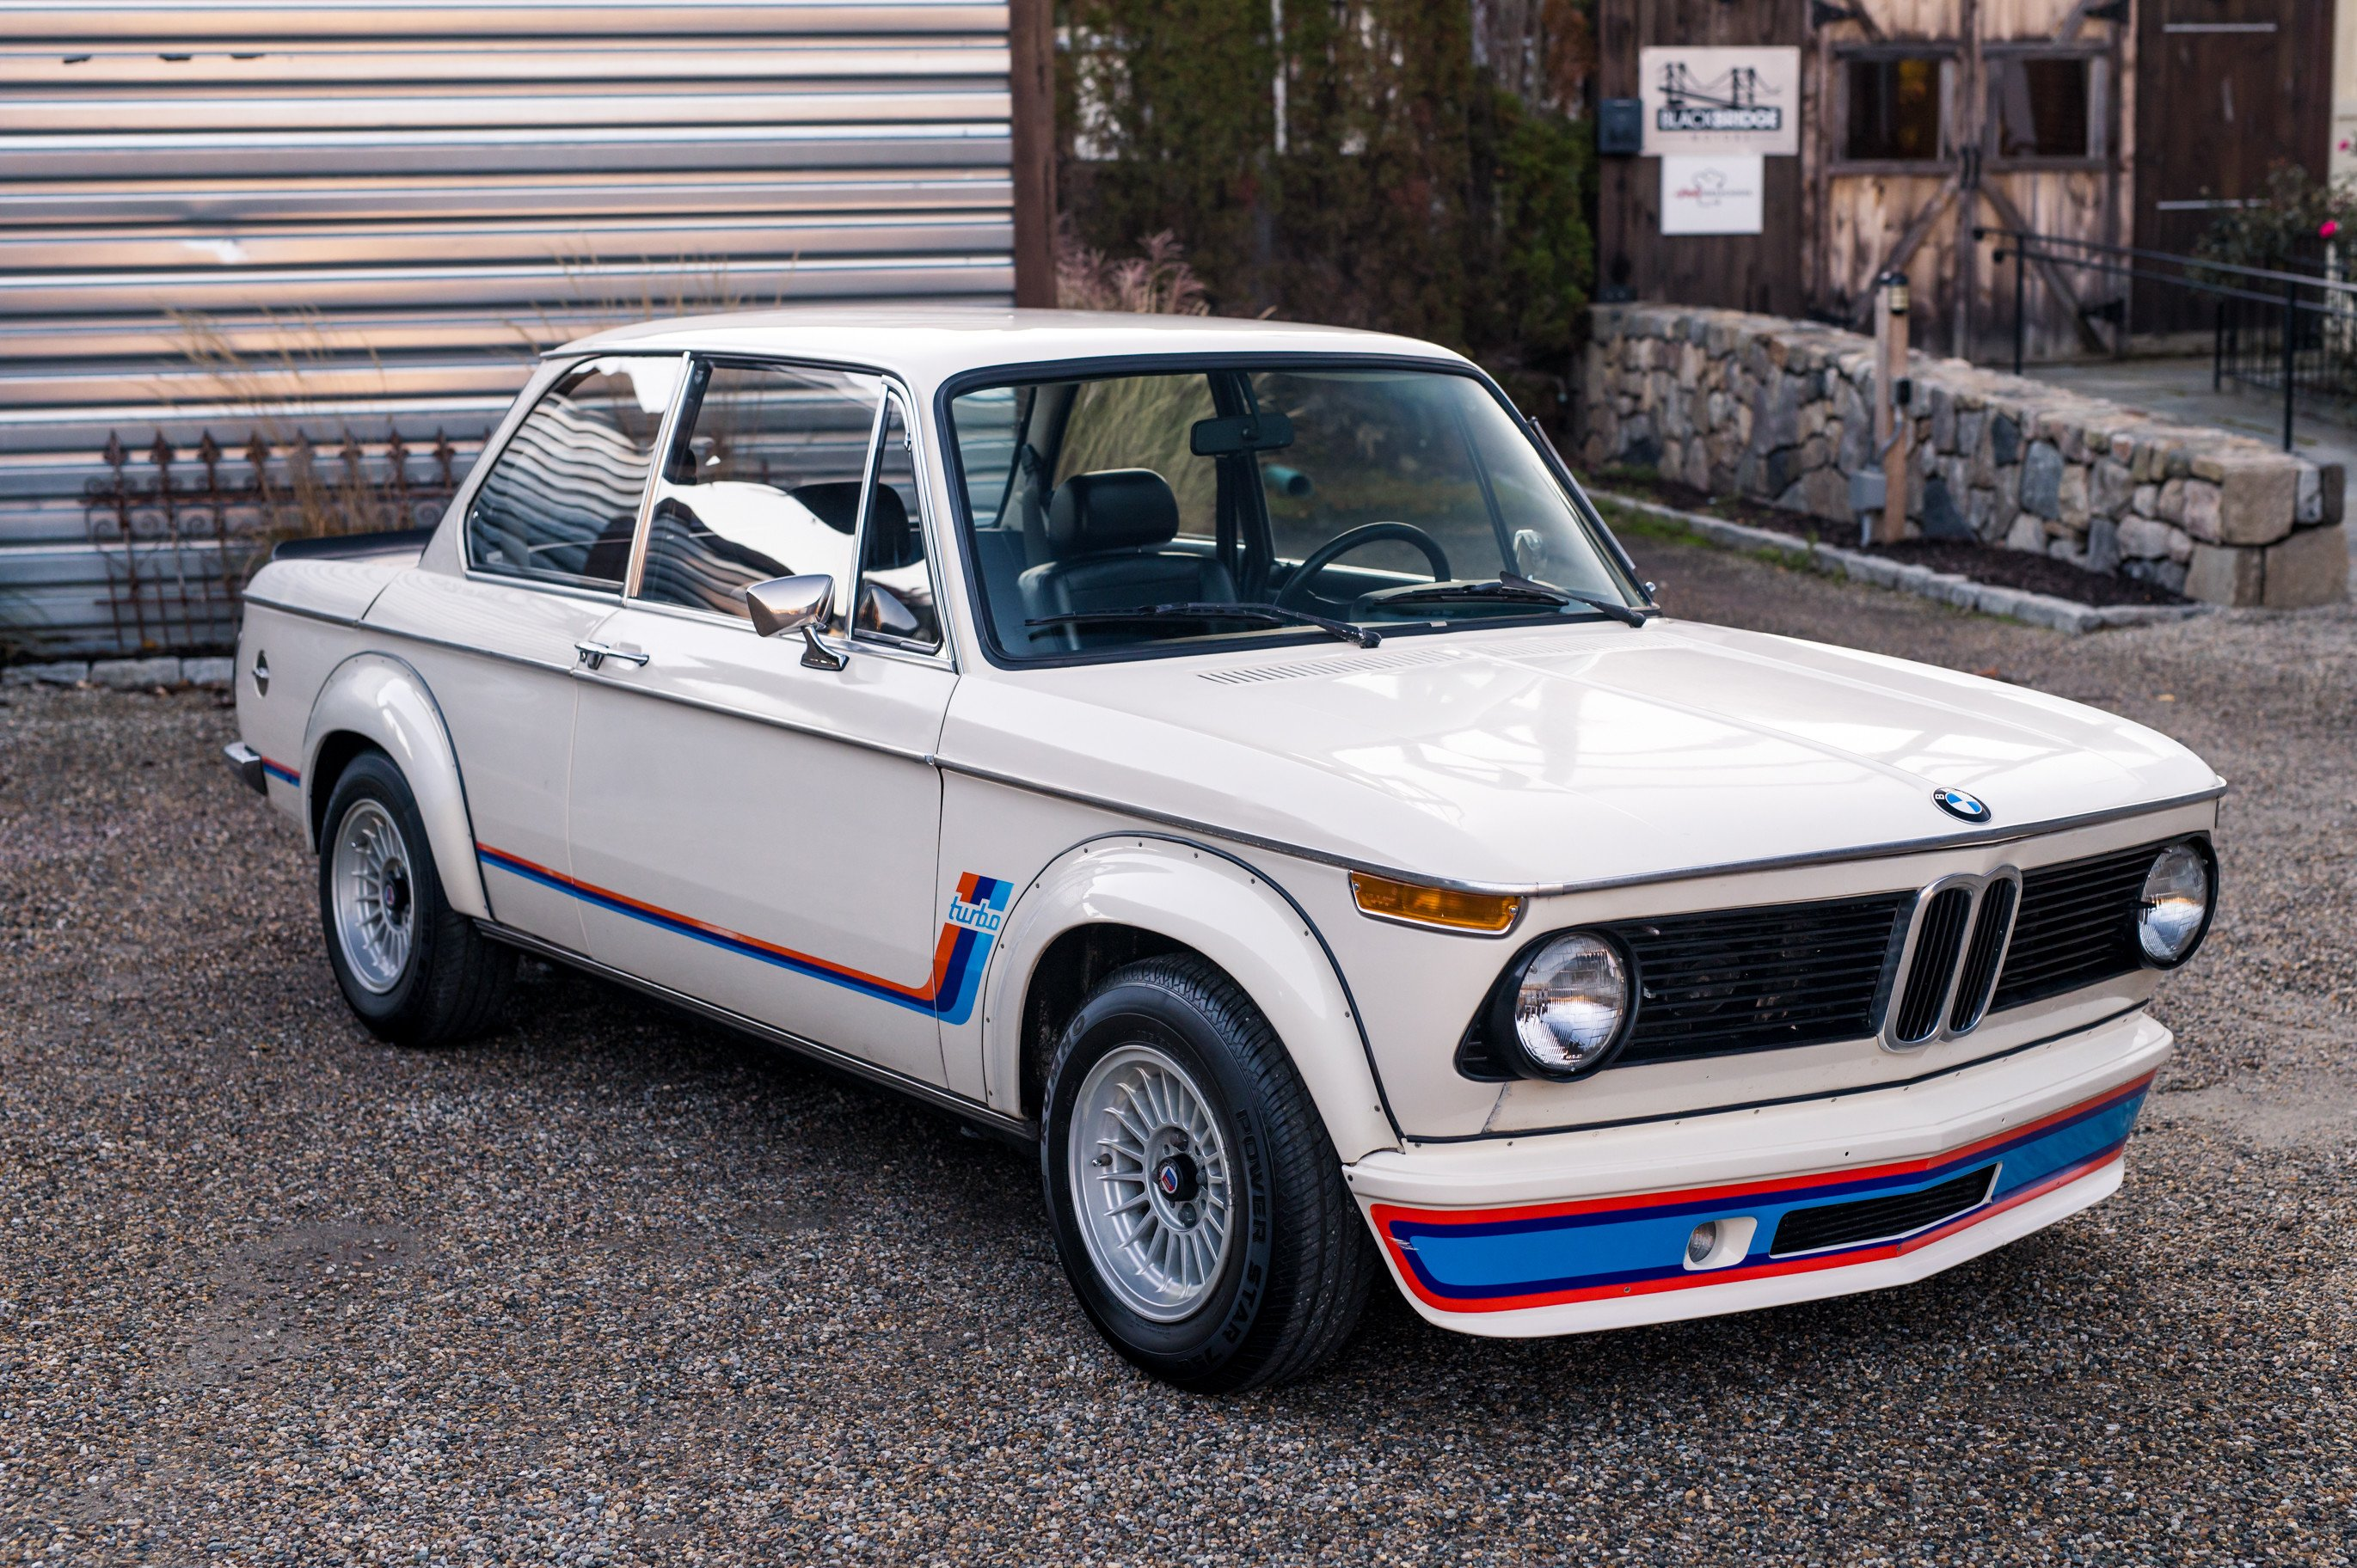 1974 Bmw 2002 For Sale Near Norwalk Connecticut 06854 Classics On Autotrader